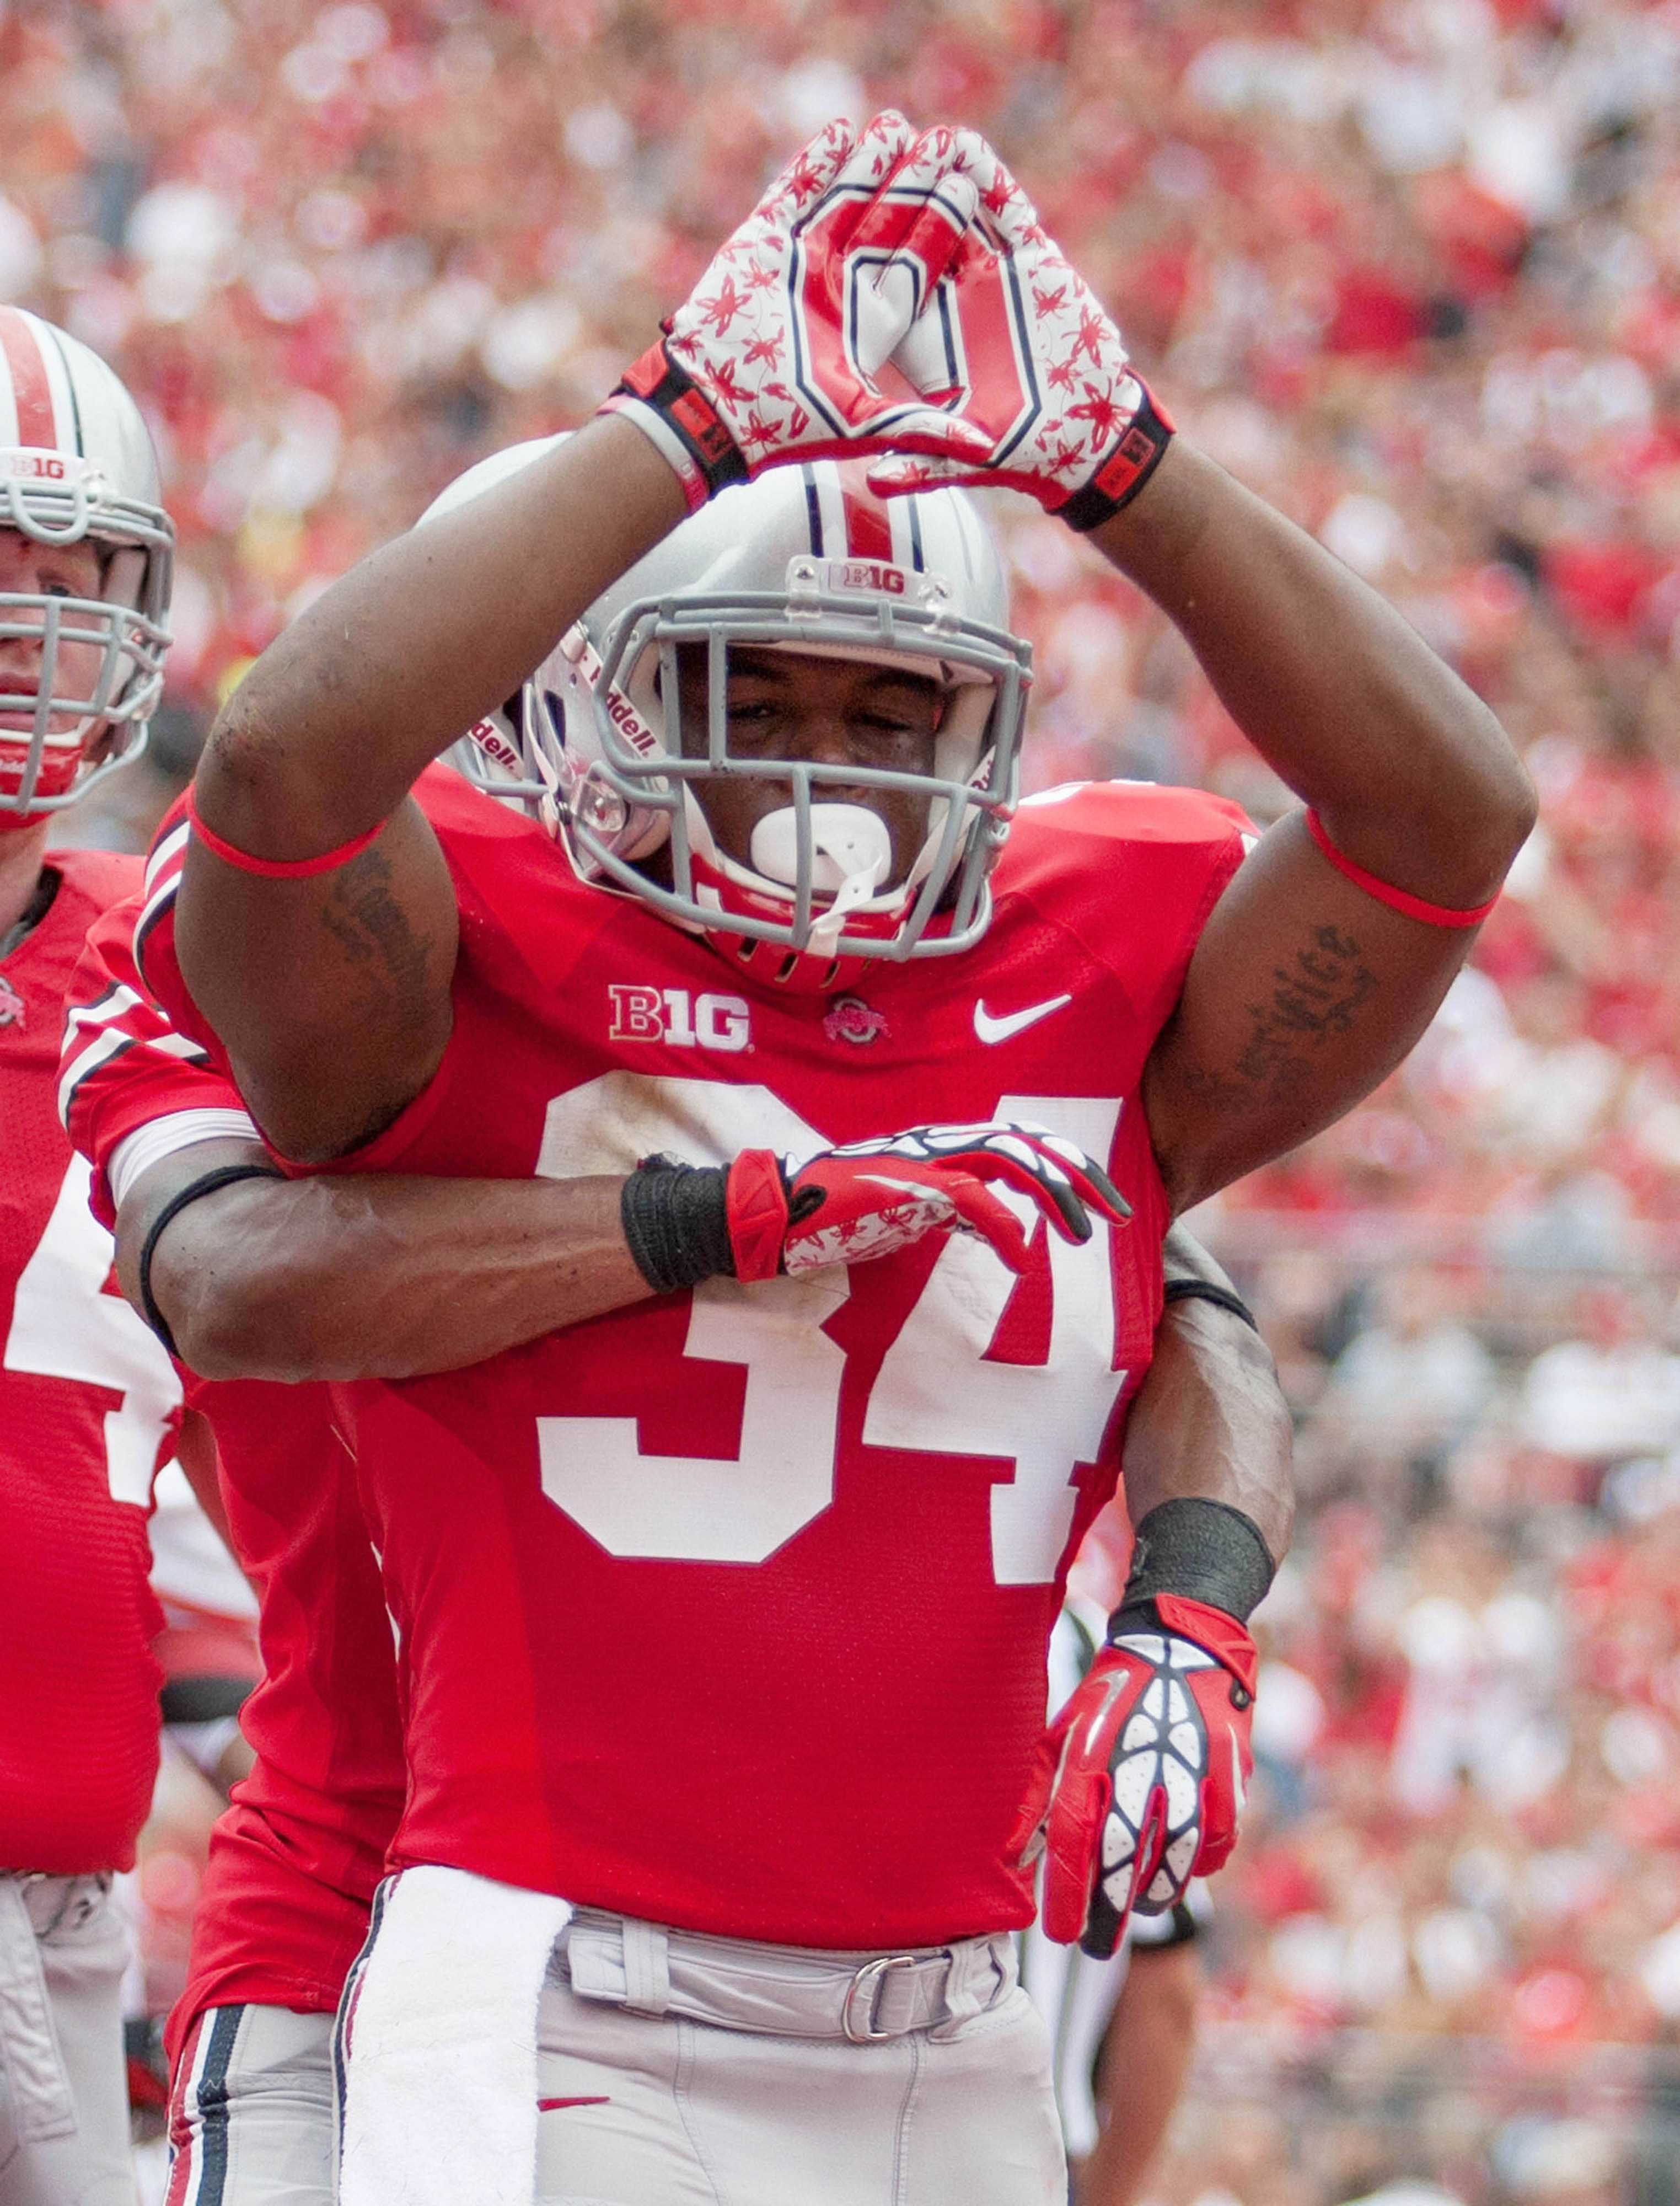 Sept 1, 2012; Columbus, OH, USA; Ohio State Buckeyes running back Carlos Hyde (34) celebrates his touchdown during the second quarter of the game against the Miami Redhawks at Ohio Stadium. Mandatory Credit: Rob Leifheit-US PRESSWIRE